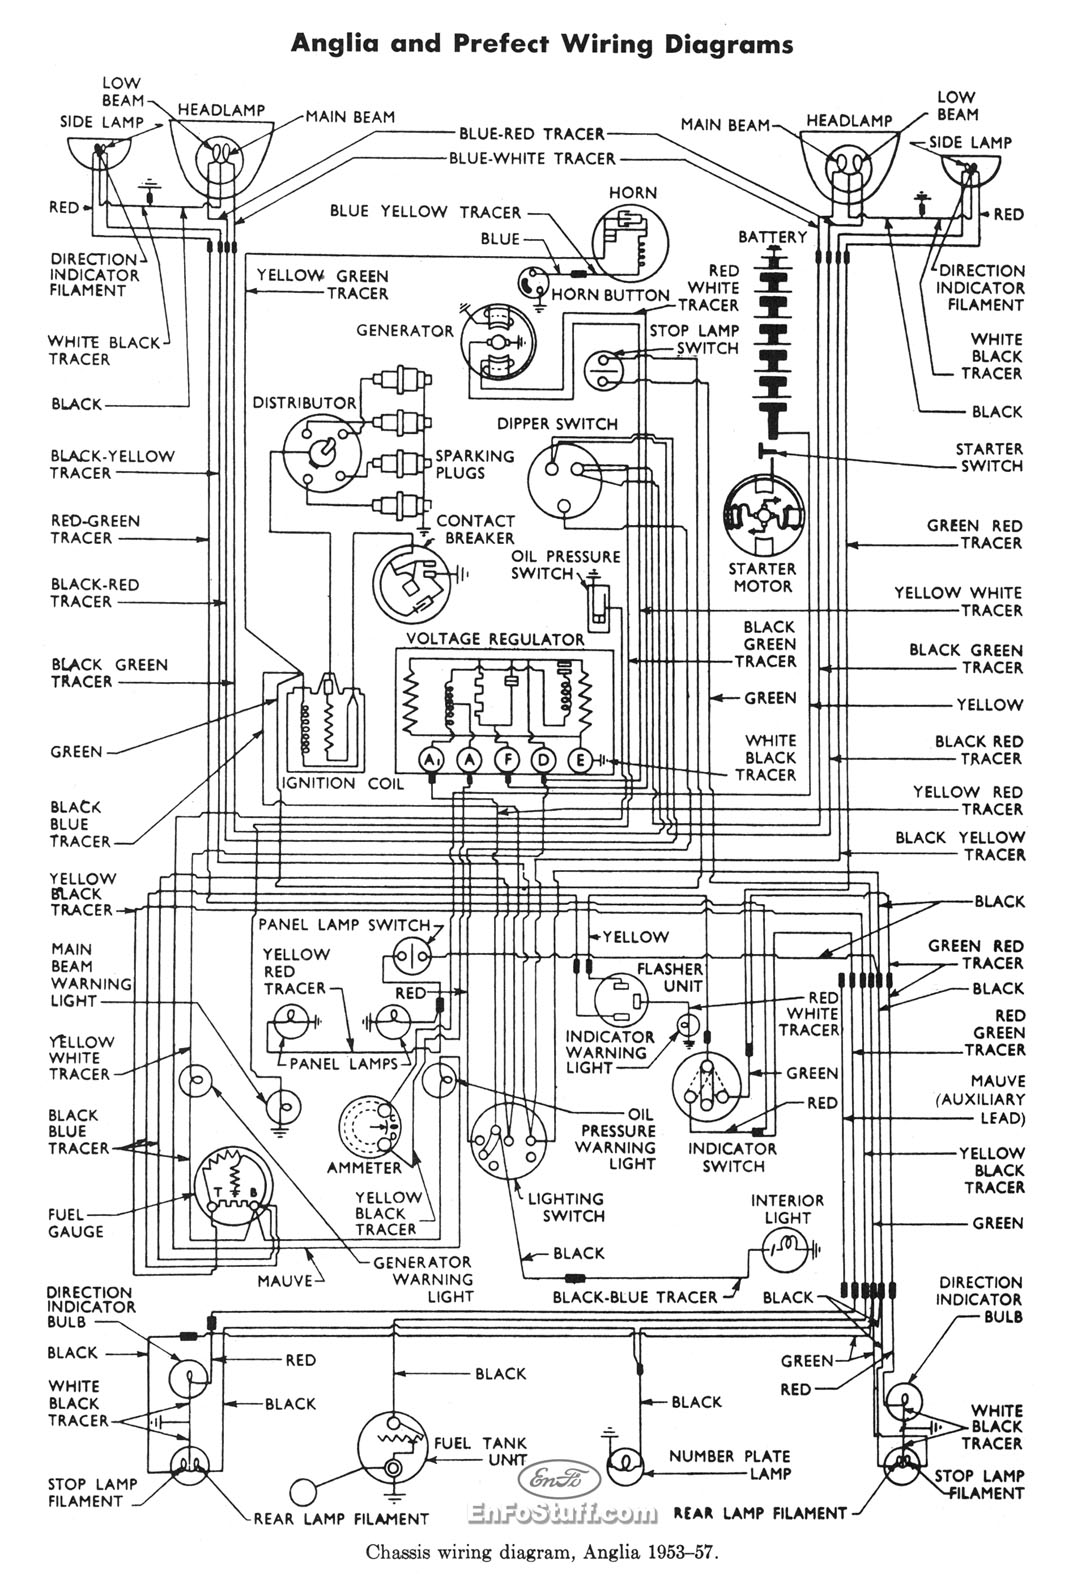 [SCHEMATICS_4FD]  DIAGRAM] John Deere 7700 Wiring Diagram FULL Version HD Quality Wiring  Diagram - THROATDIAGRAM.SAINTMIHIEL-TOURISME.FR | John Deere 5500 Tractor Wiring Diagrams |  | Saintmihiel-tourisme.fr